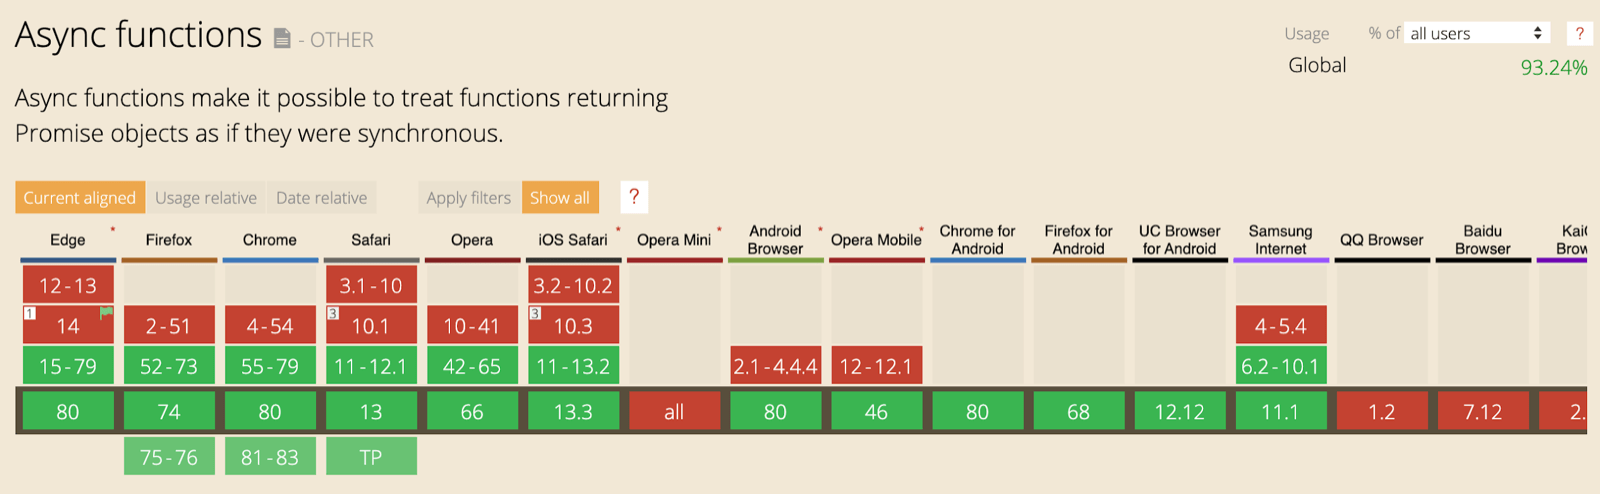 The CanIUse support table for async functions showing support across all major browsers.